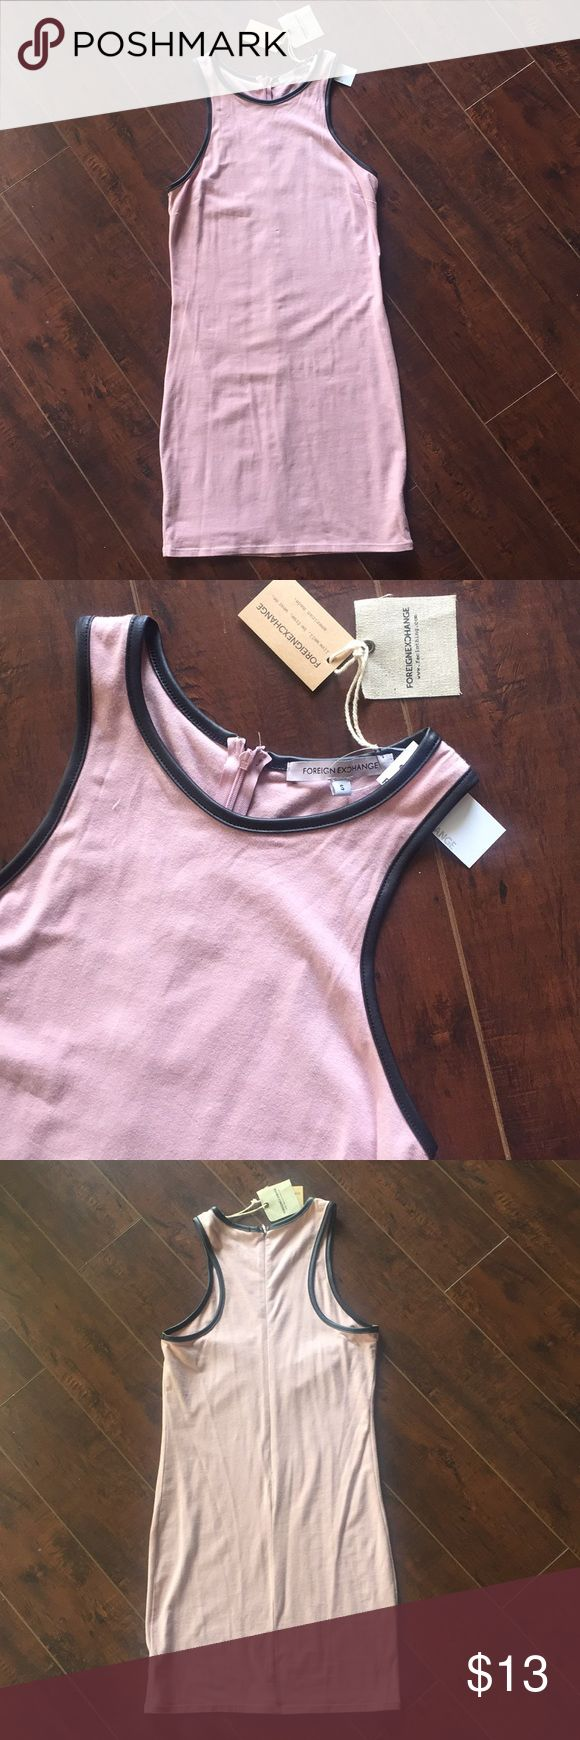 NWT Foreign Exchange Body Con Dress NWT Foreign Exchange Body Con Dress. Perfect for Fall paired with booties and heels! Foreign Exchange Dresses